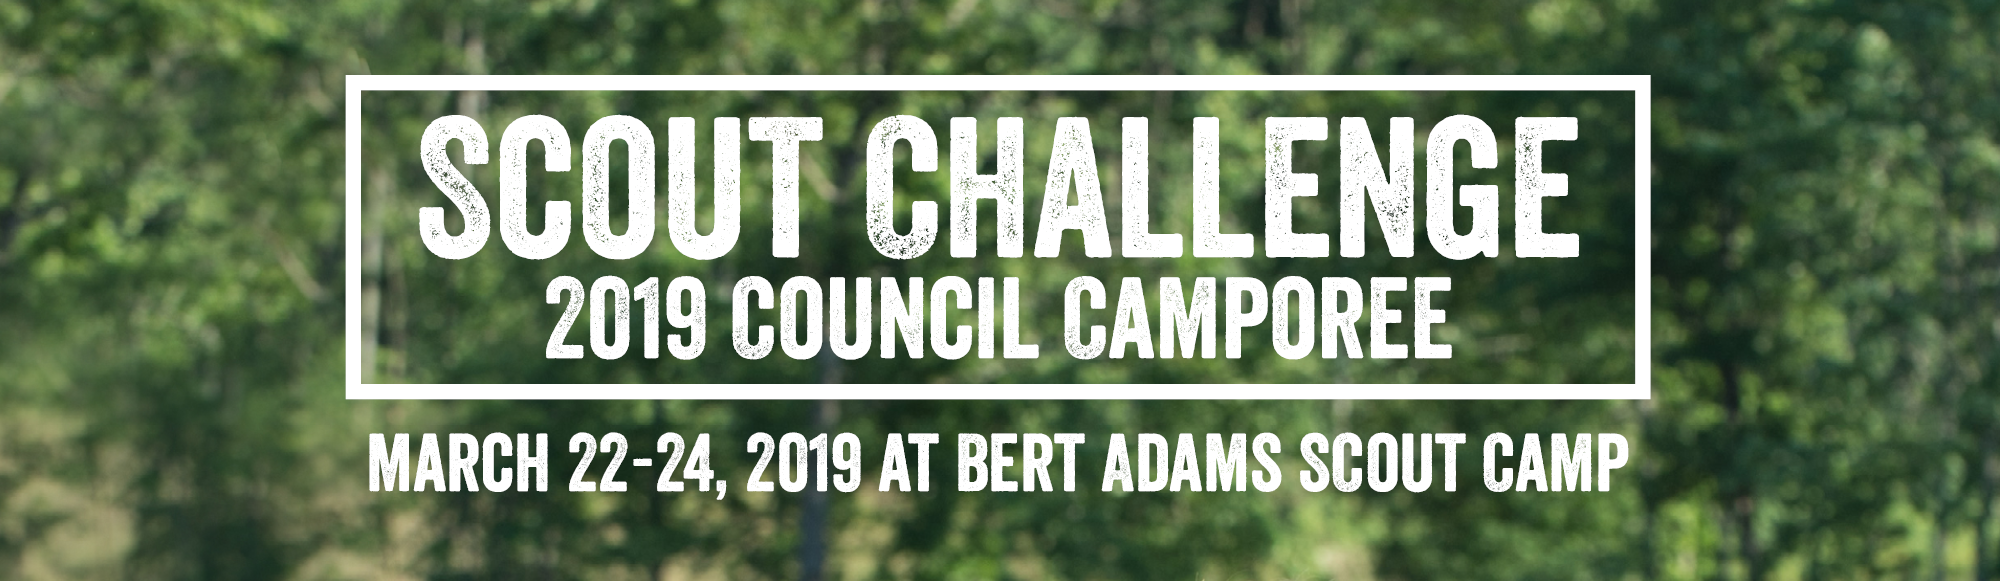 Scout Challenge 2019: The Atlanta Area Council's Camporee